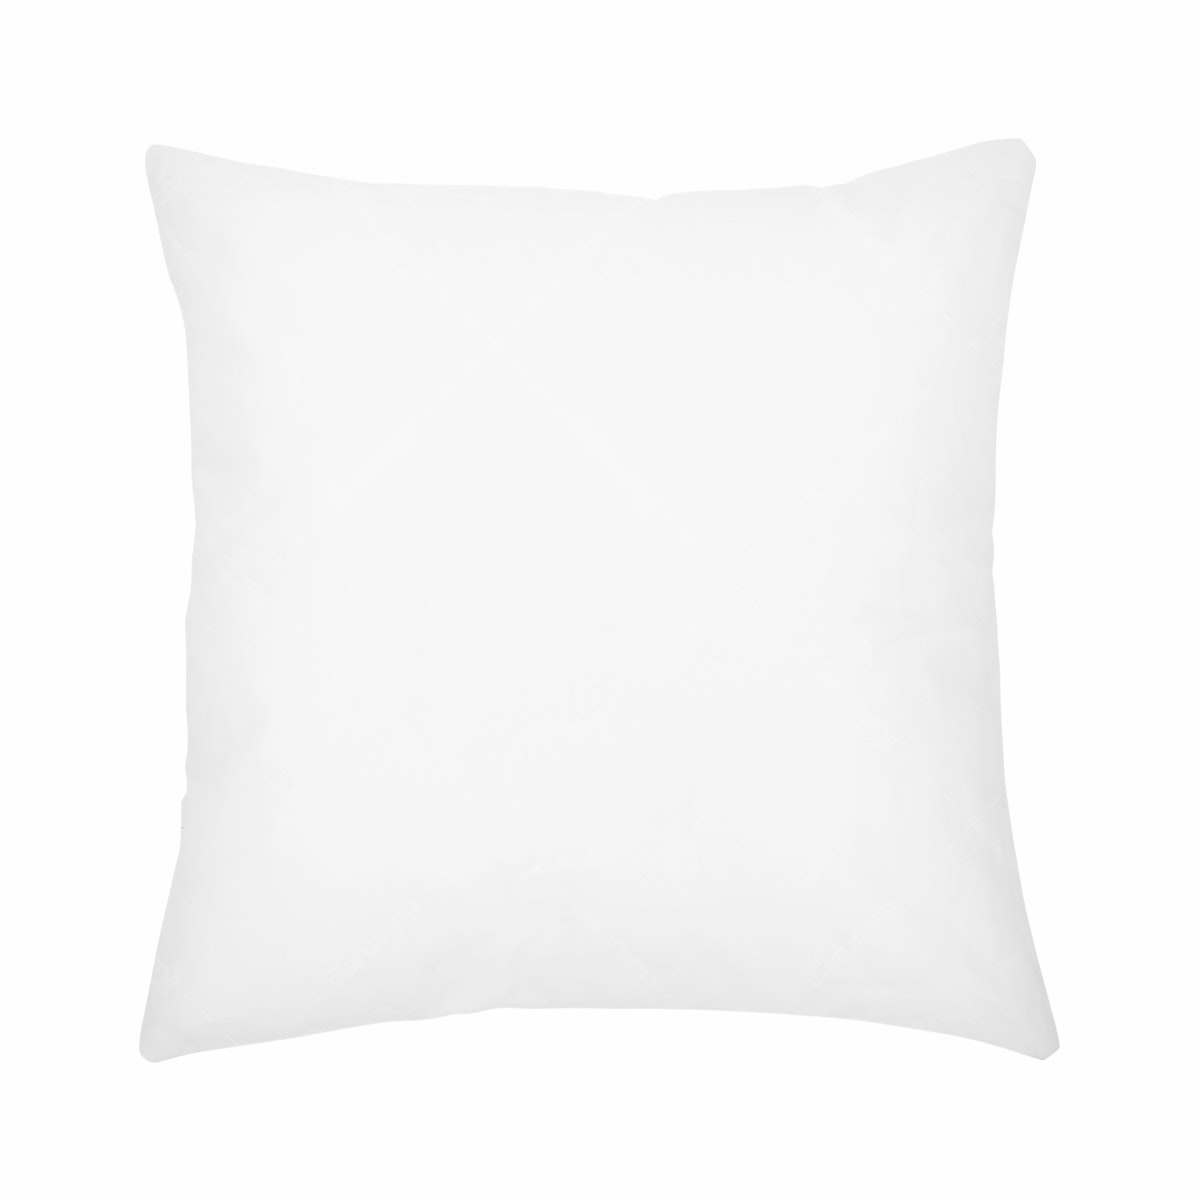 Better Sleep Cushion isi 2 40x40 plus tas